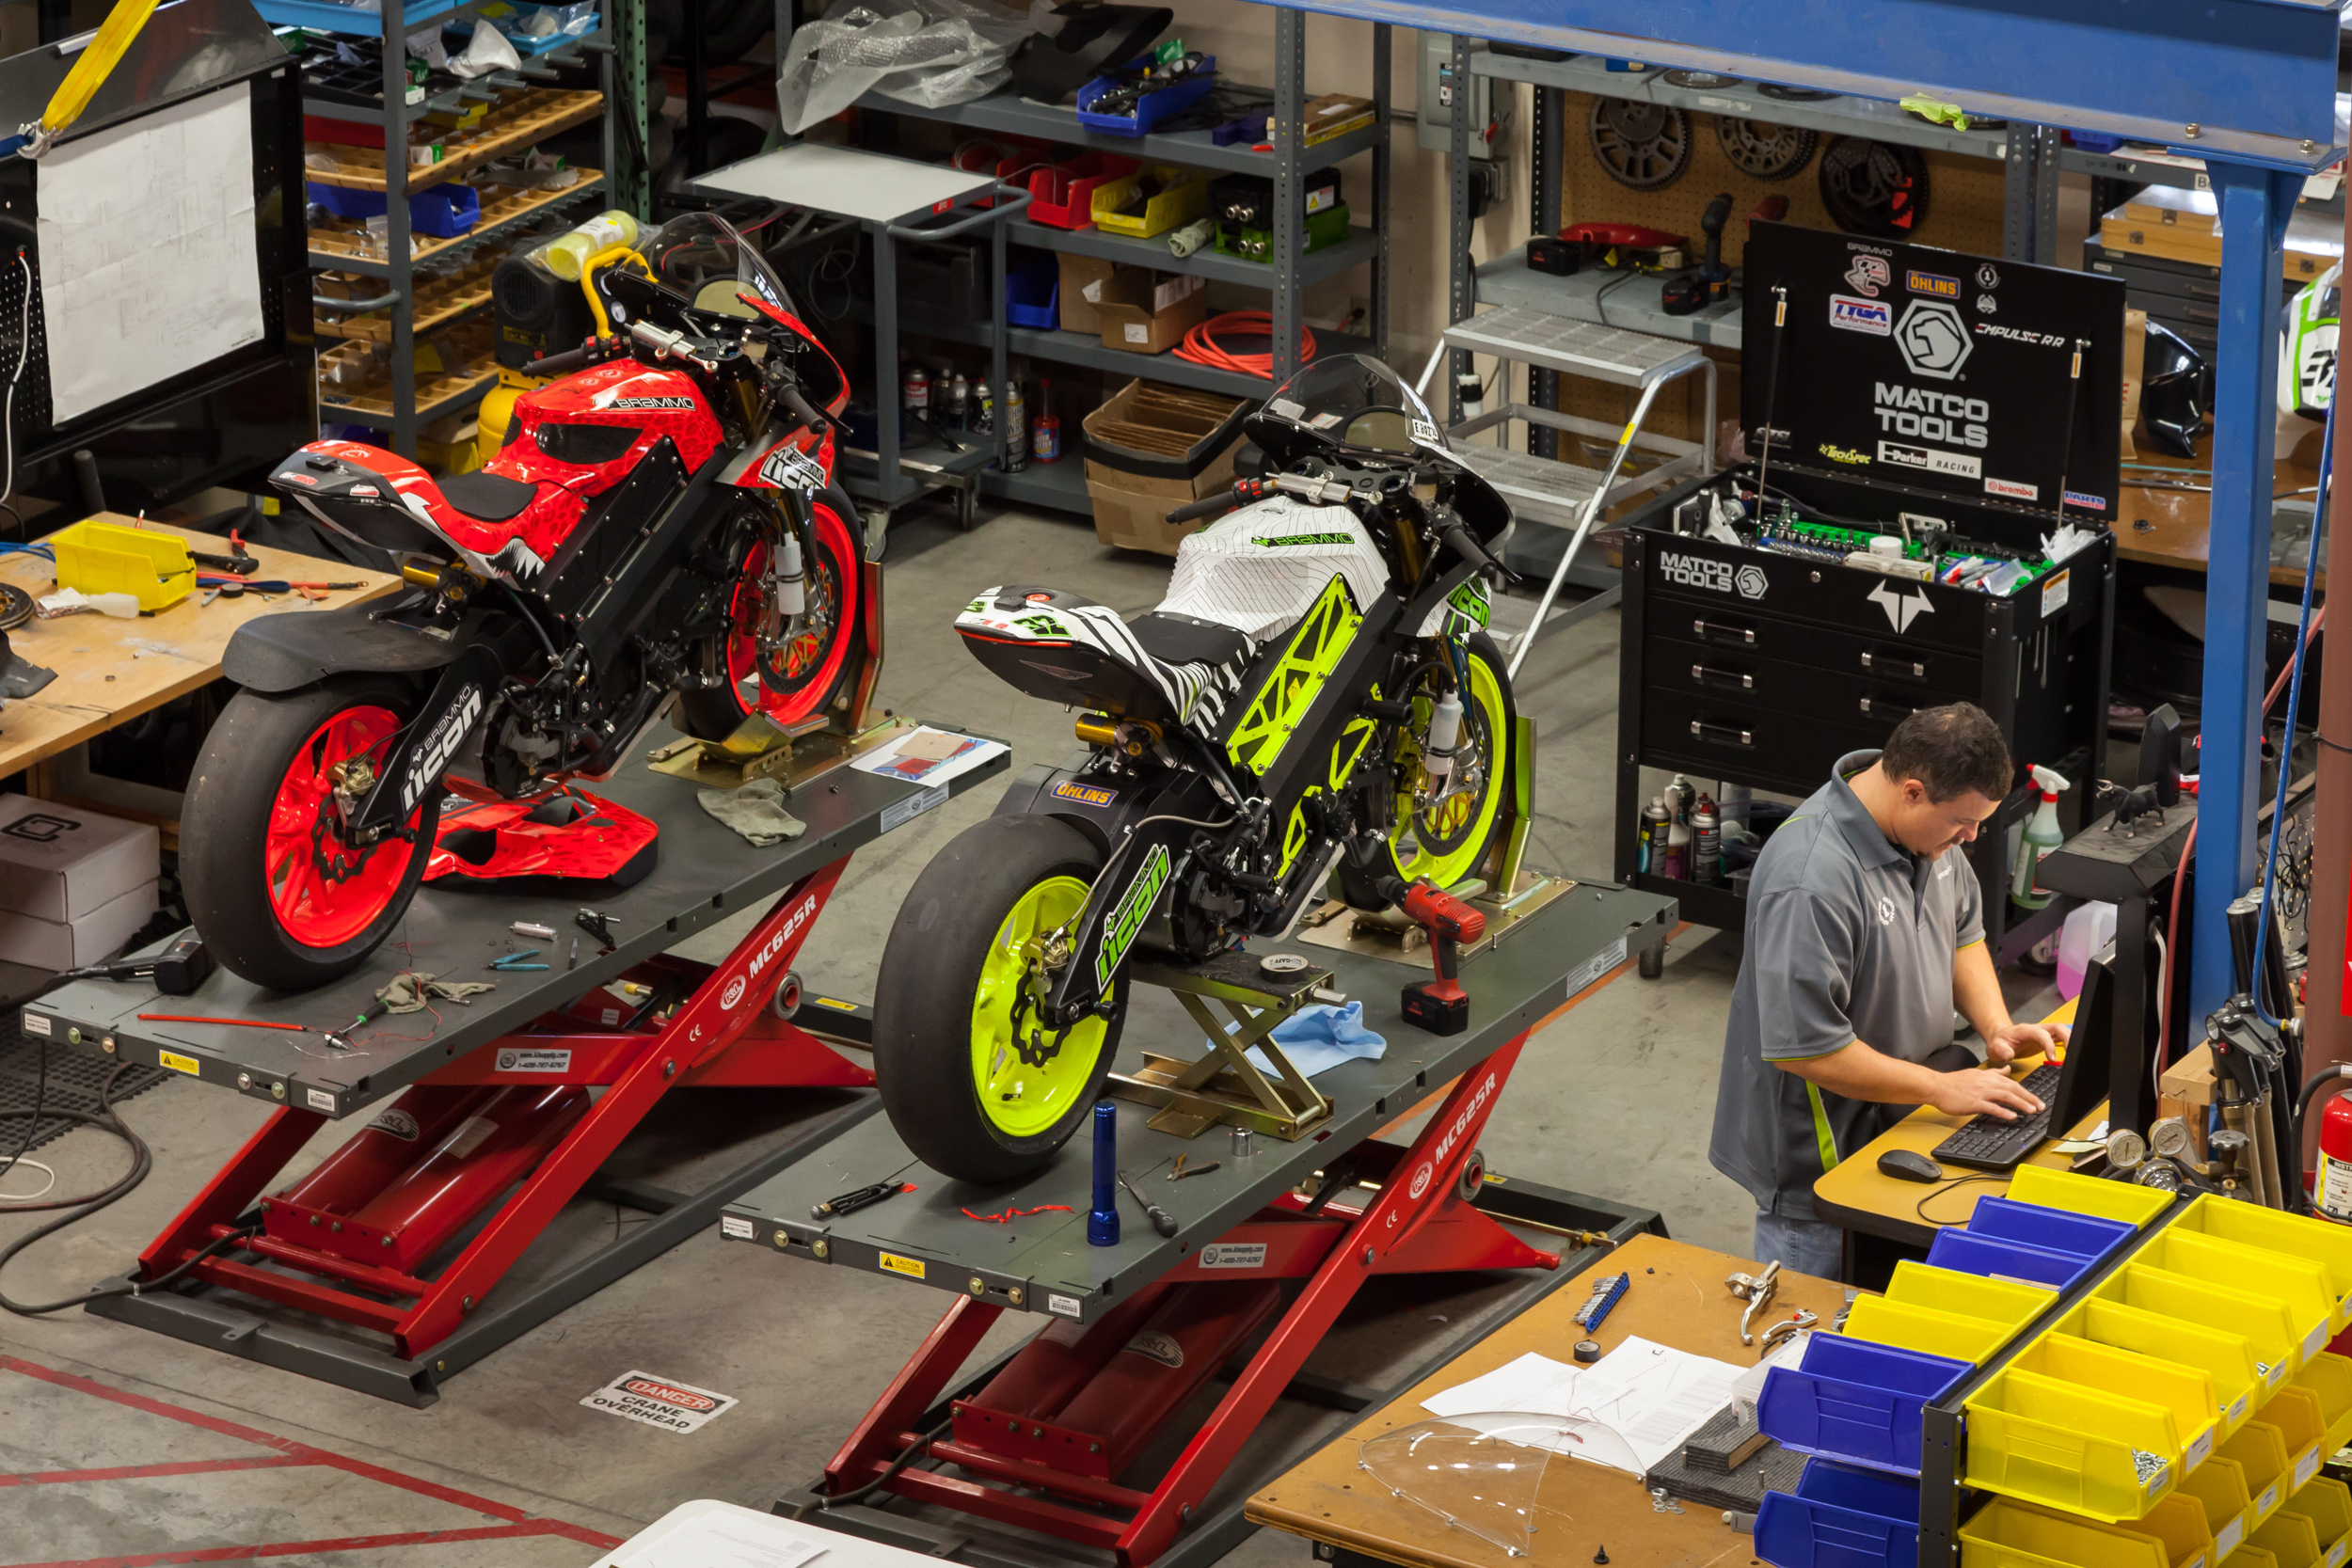 Preparing the Empulse RR bikes for racing.